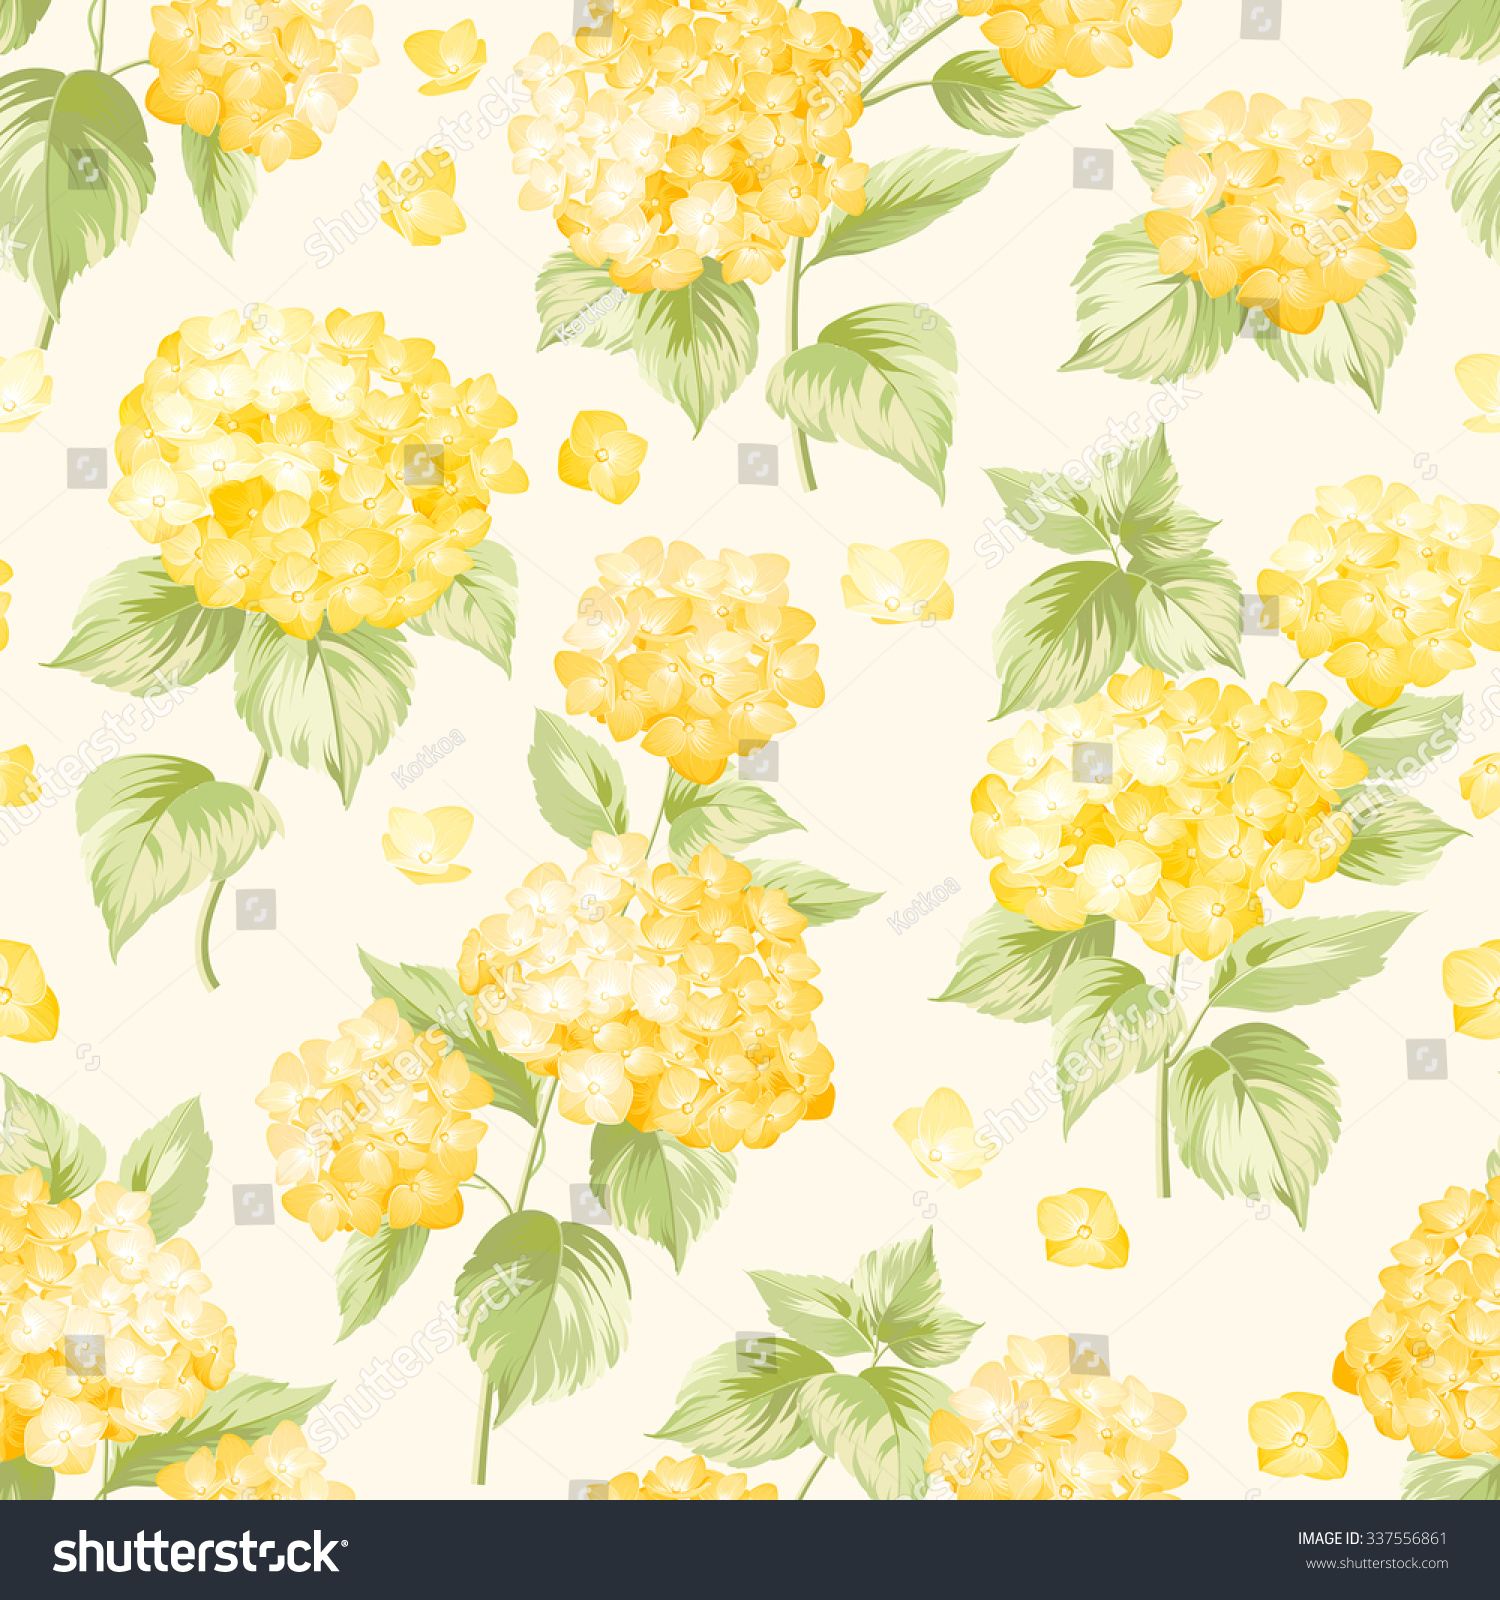 yellow floral pattern - photo #19